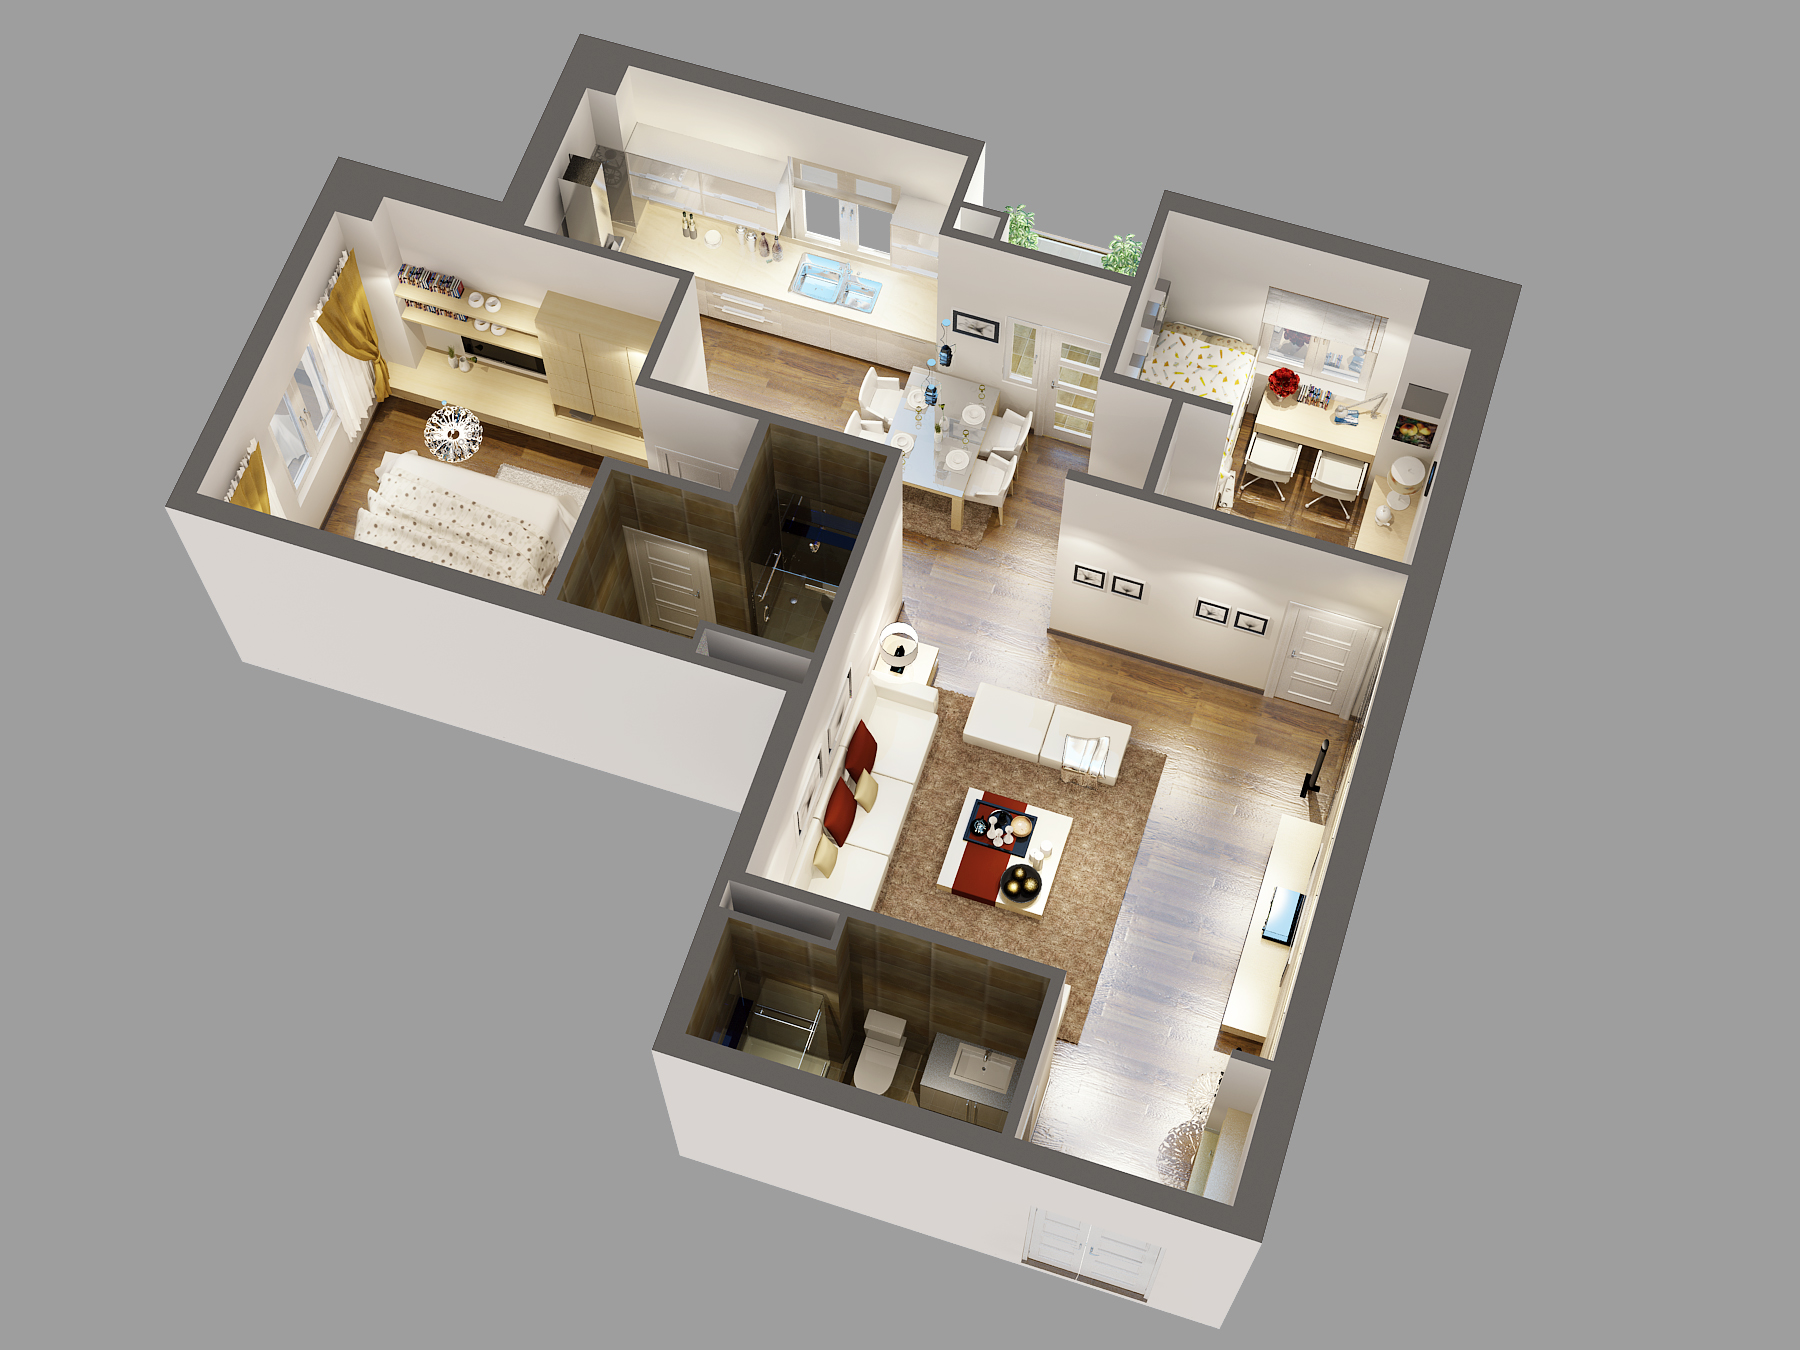 Detailed House Cutaway 3d Model 3d Model Max 1